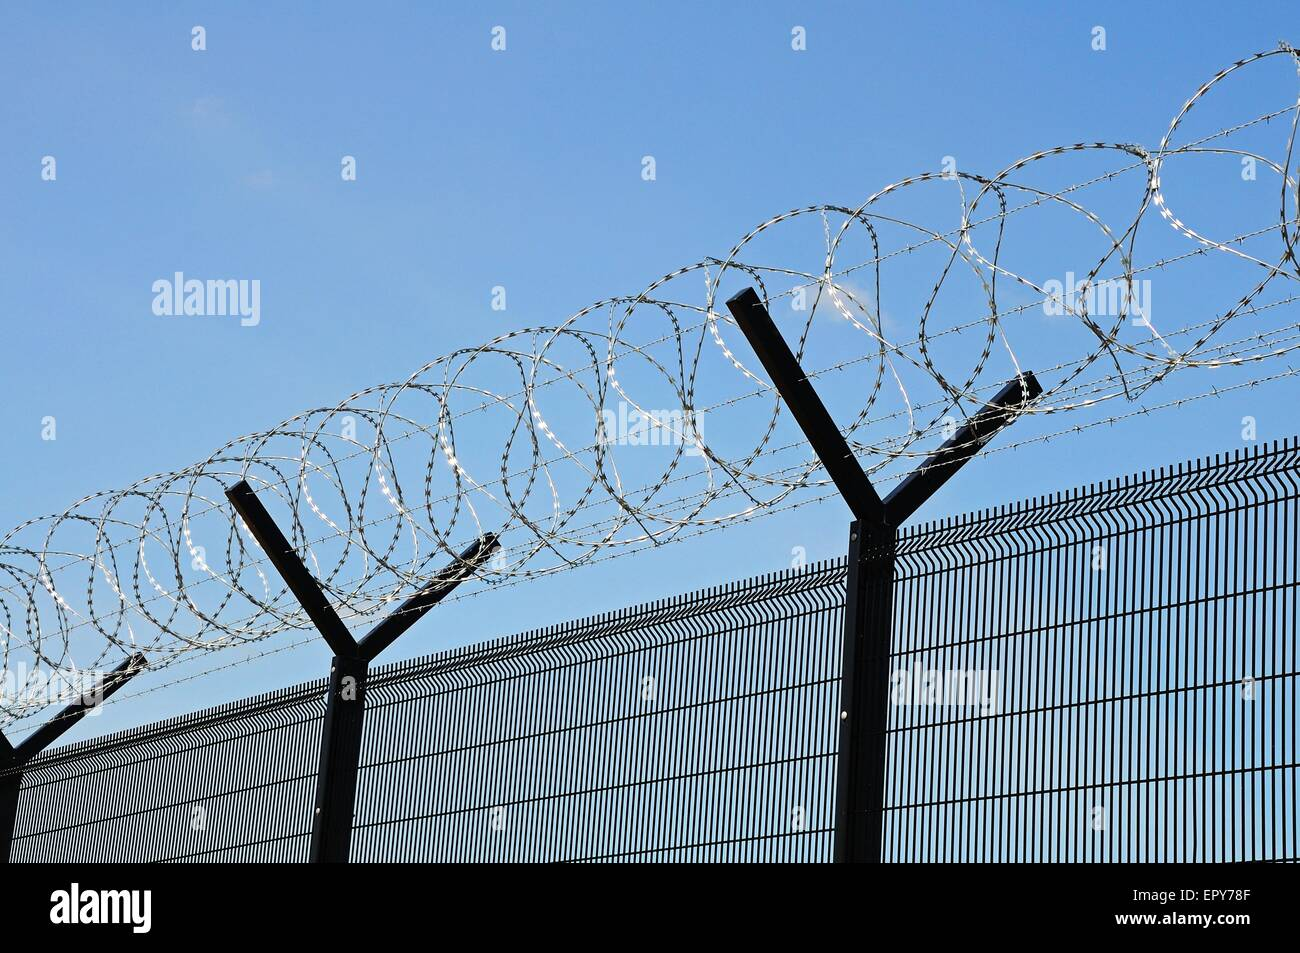 Coiled Barbed Wire Stock Photos & Coiled Barbed Wire Stock Images ...